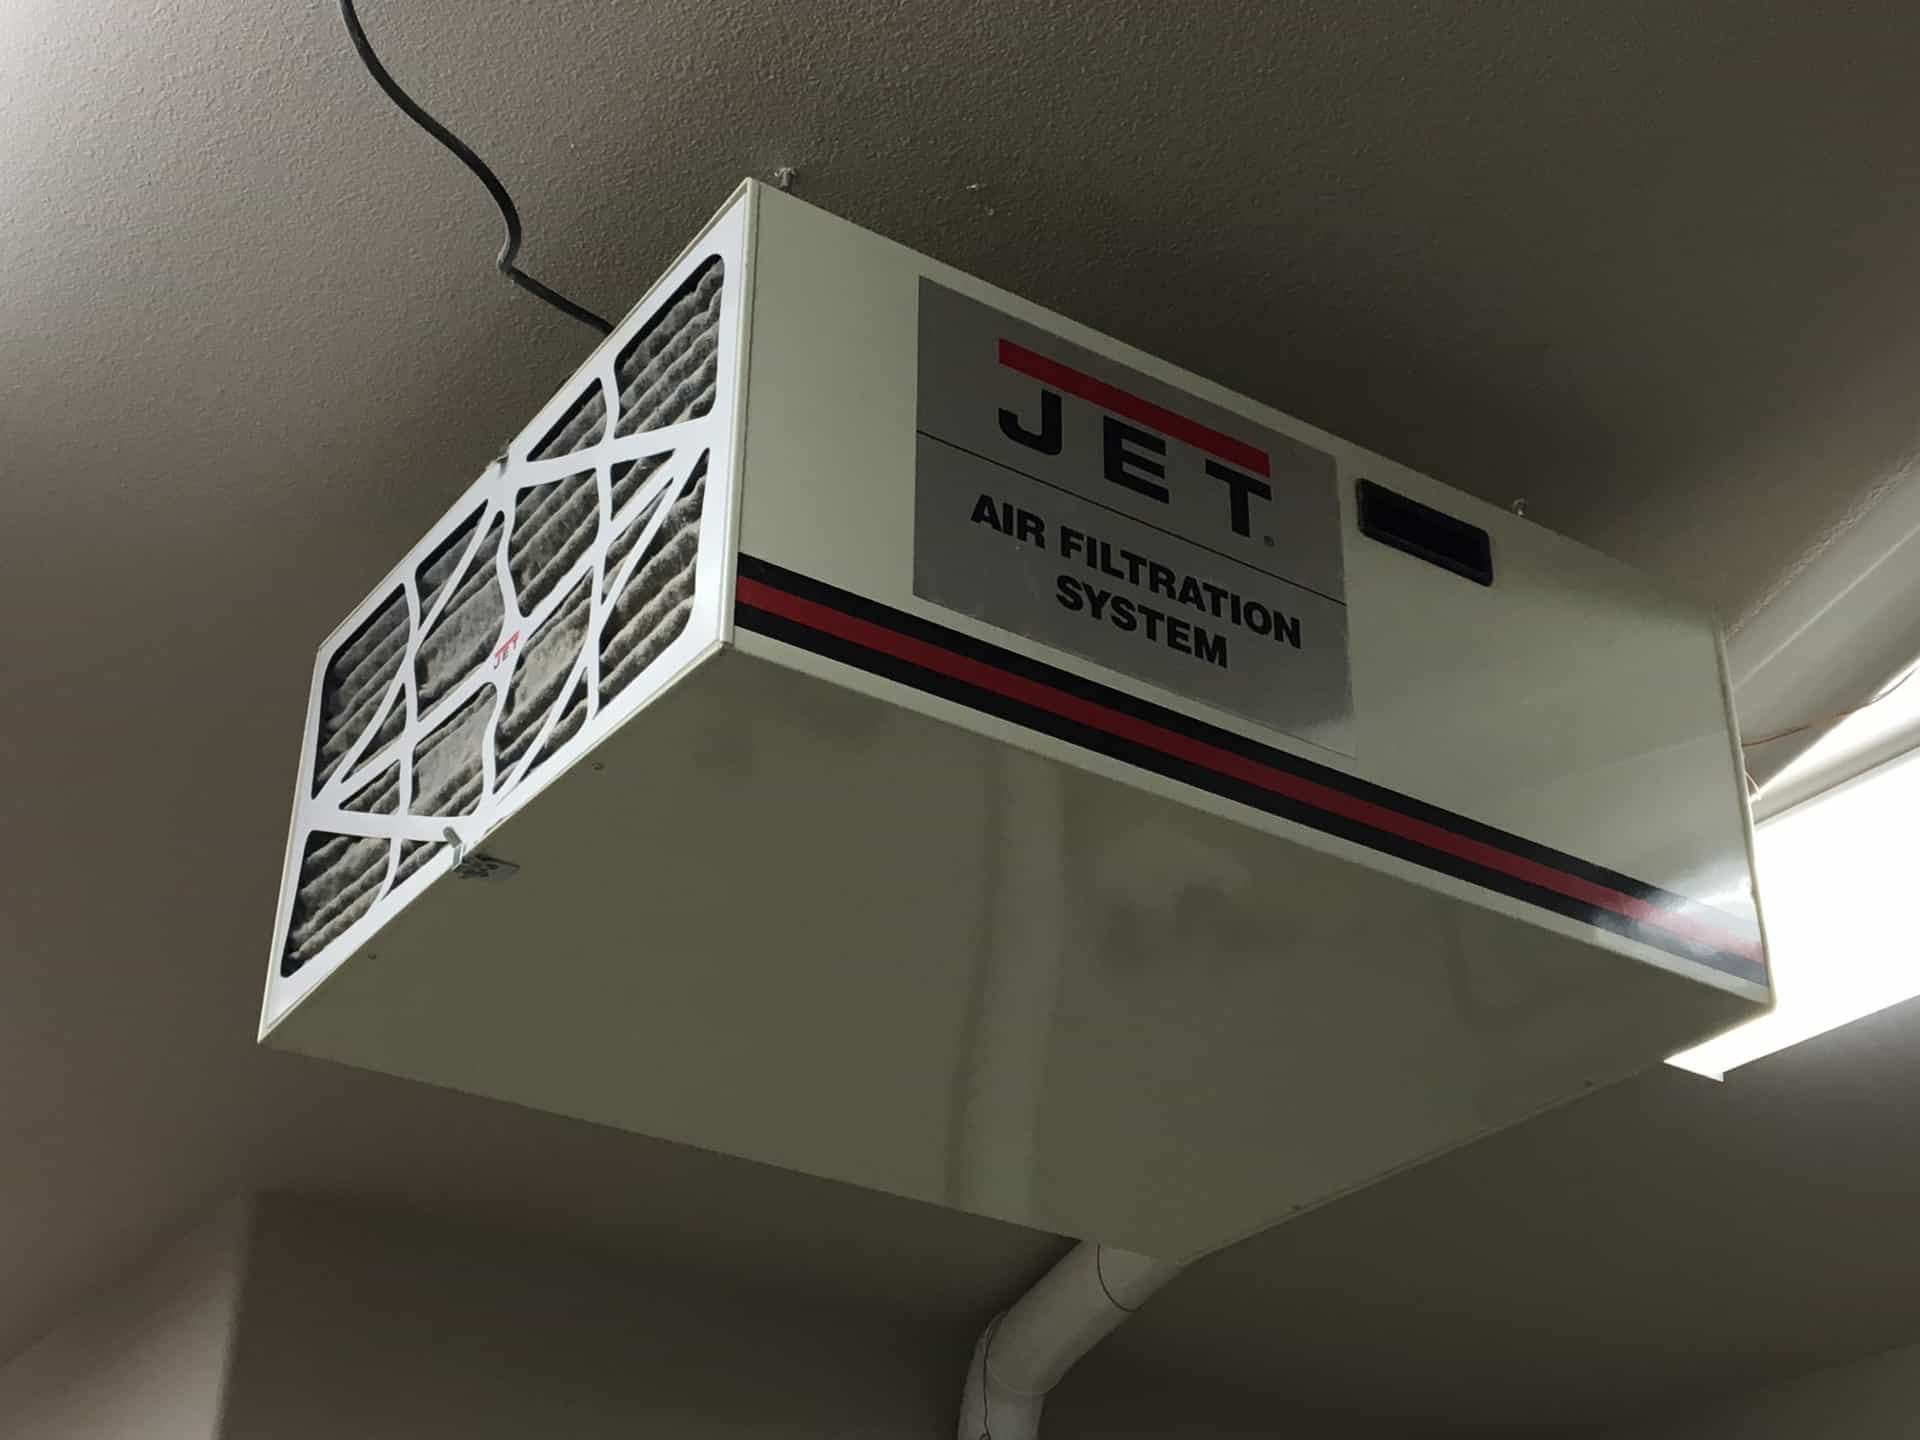 Shop Tour Jet Air Filtration System Afs 1000b The Geek Pub - Air Filtration System